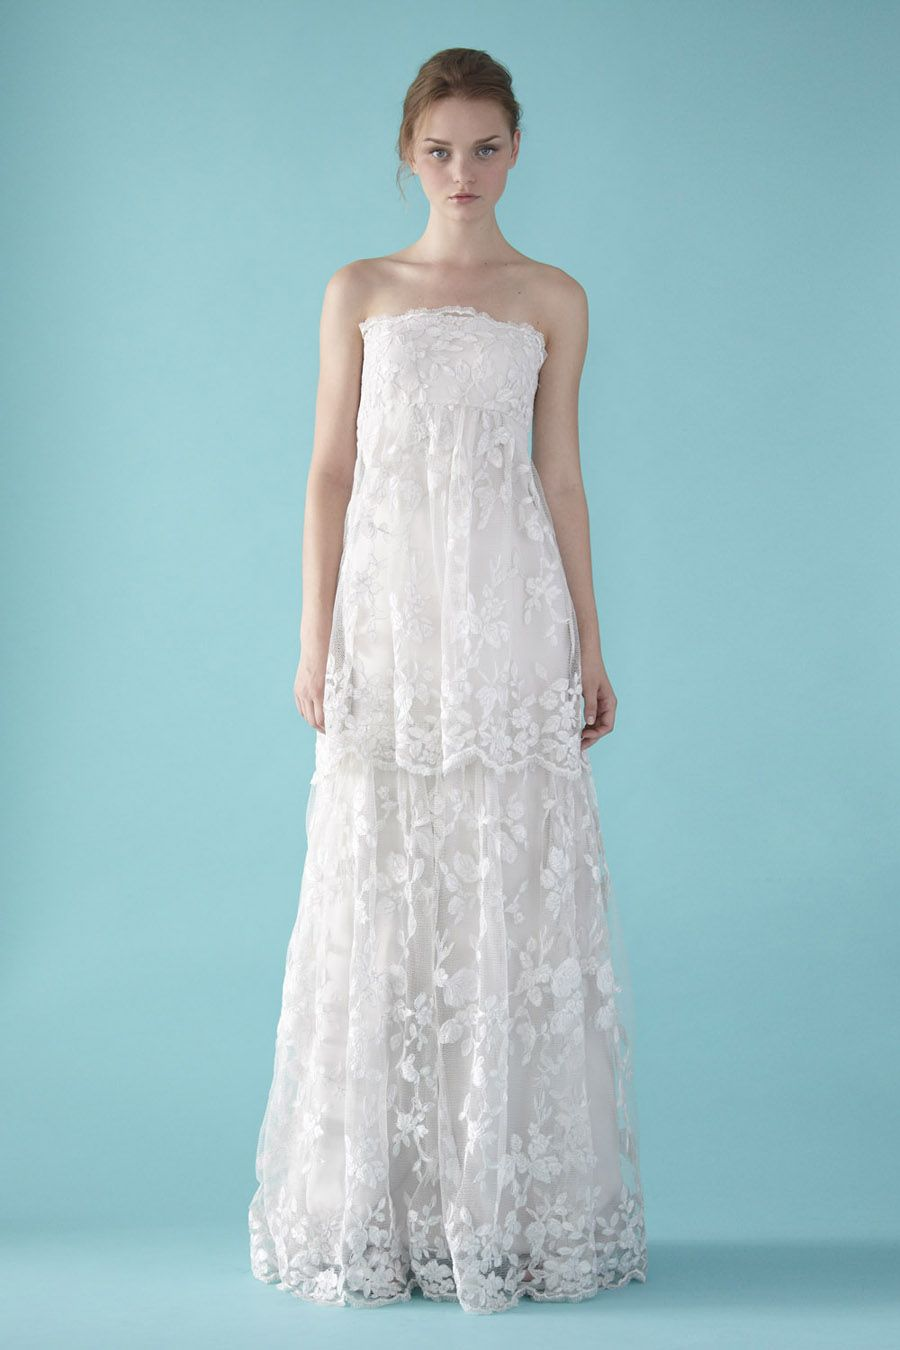 Modern Find The Perfect Wedding Dress Collection - All Wedding ...